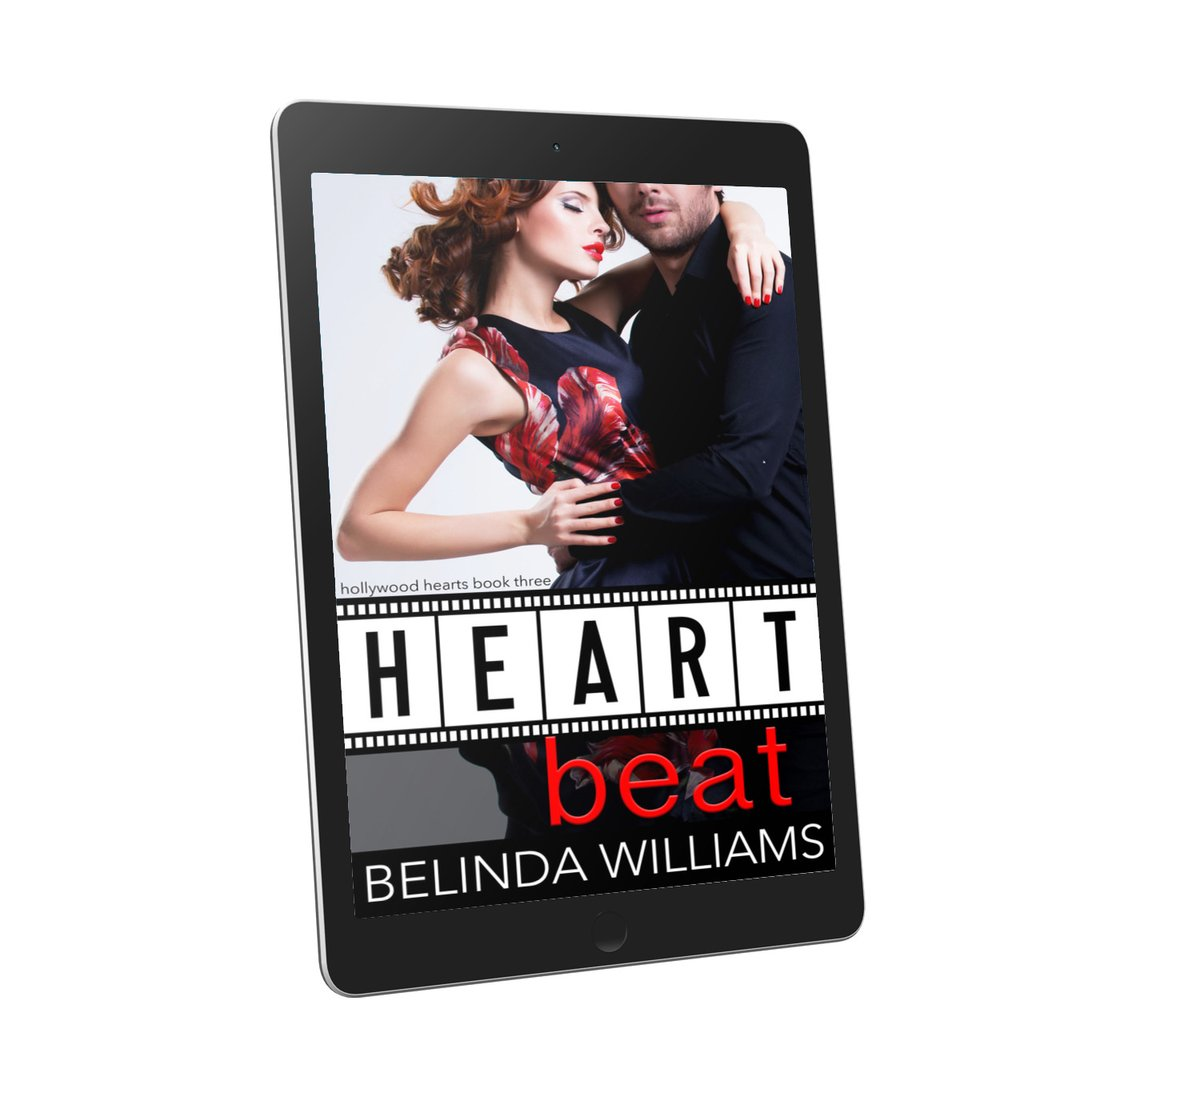 Heartbeat is 40% off this weekend only in the @kobo Feb Sale! Just enter FEBSALE at checkout: https://www.kobo.com/us/en/ebook/heartbeat-62… #hollywoodhearts #contemporaryromance #romanticsuspense #booksalepic.twitter.com/2G7NpIYVf1